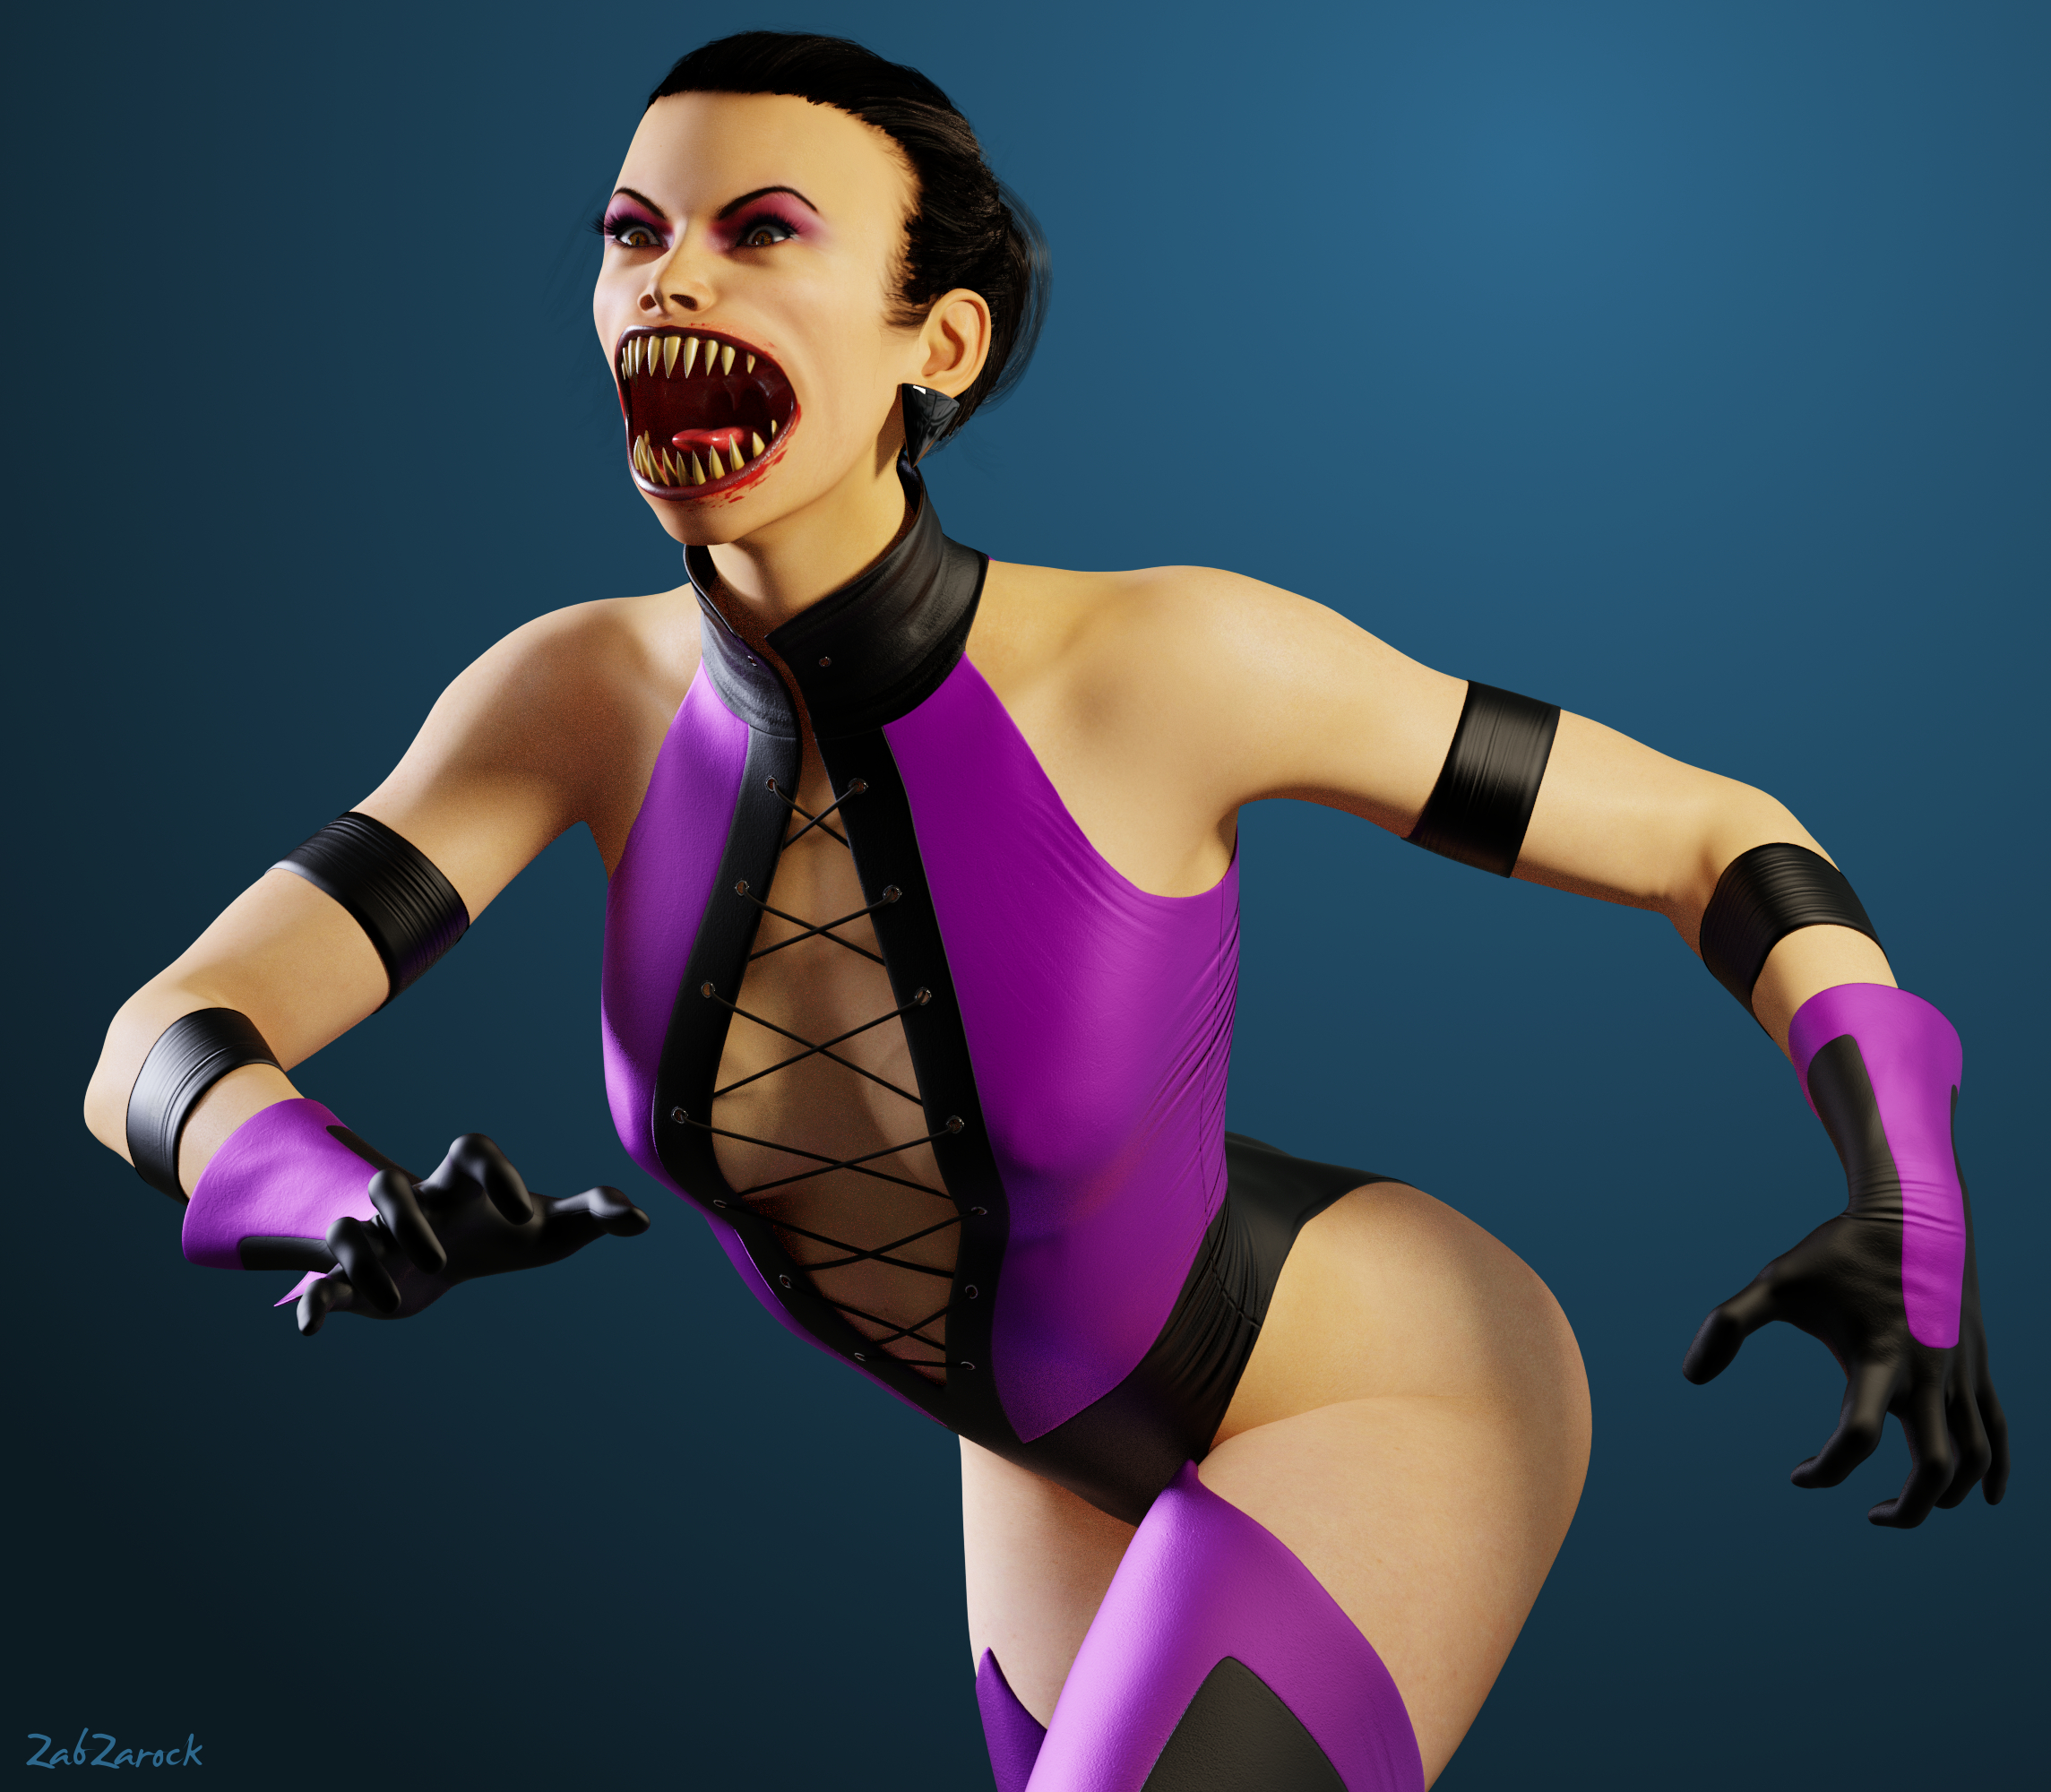 Mileena Unmasked01 by ZabZarock on DeviantArt